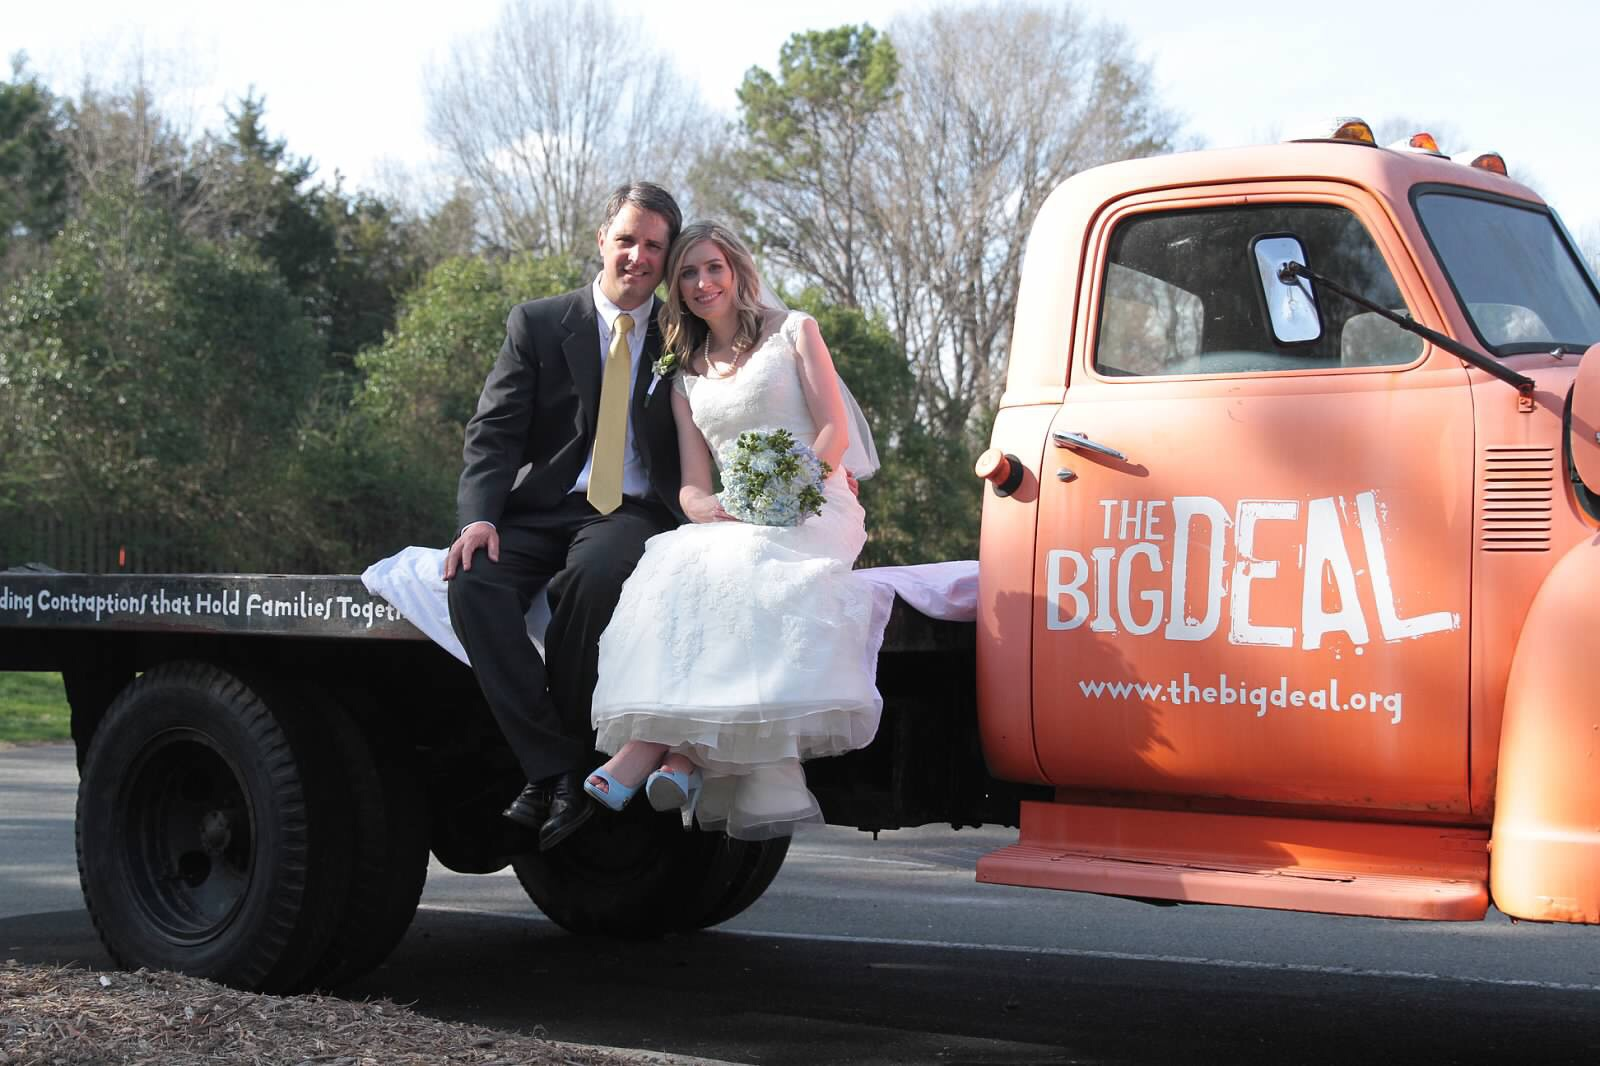 Bride and groom on a red truck for photos.